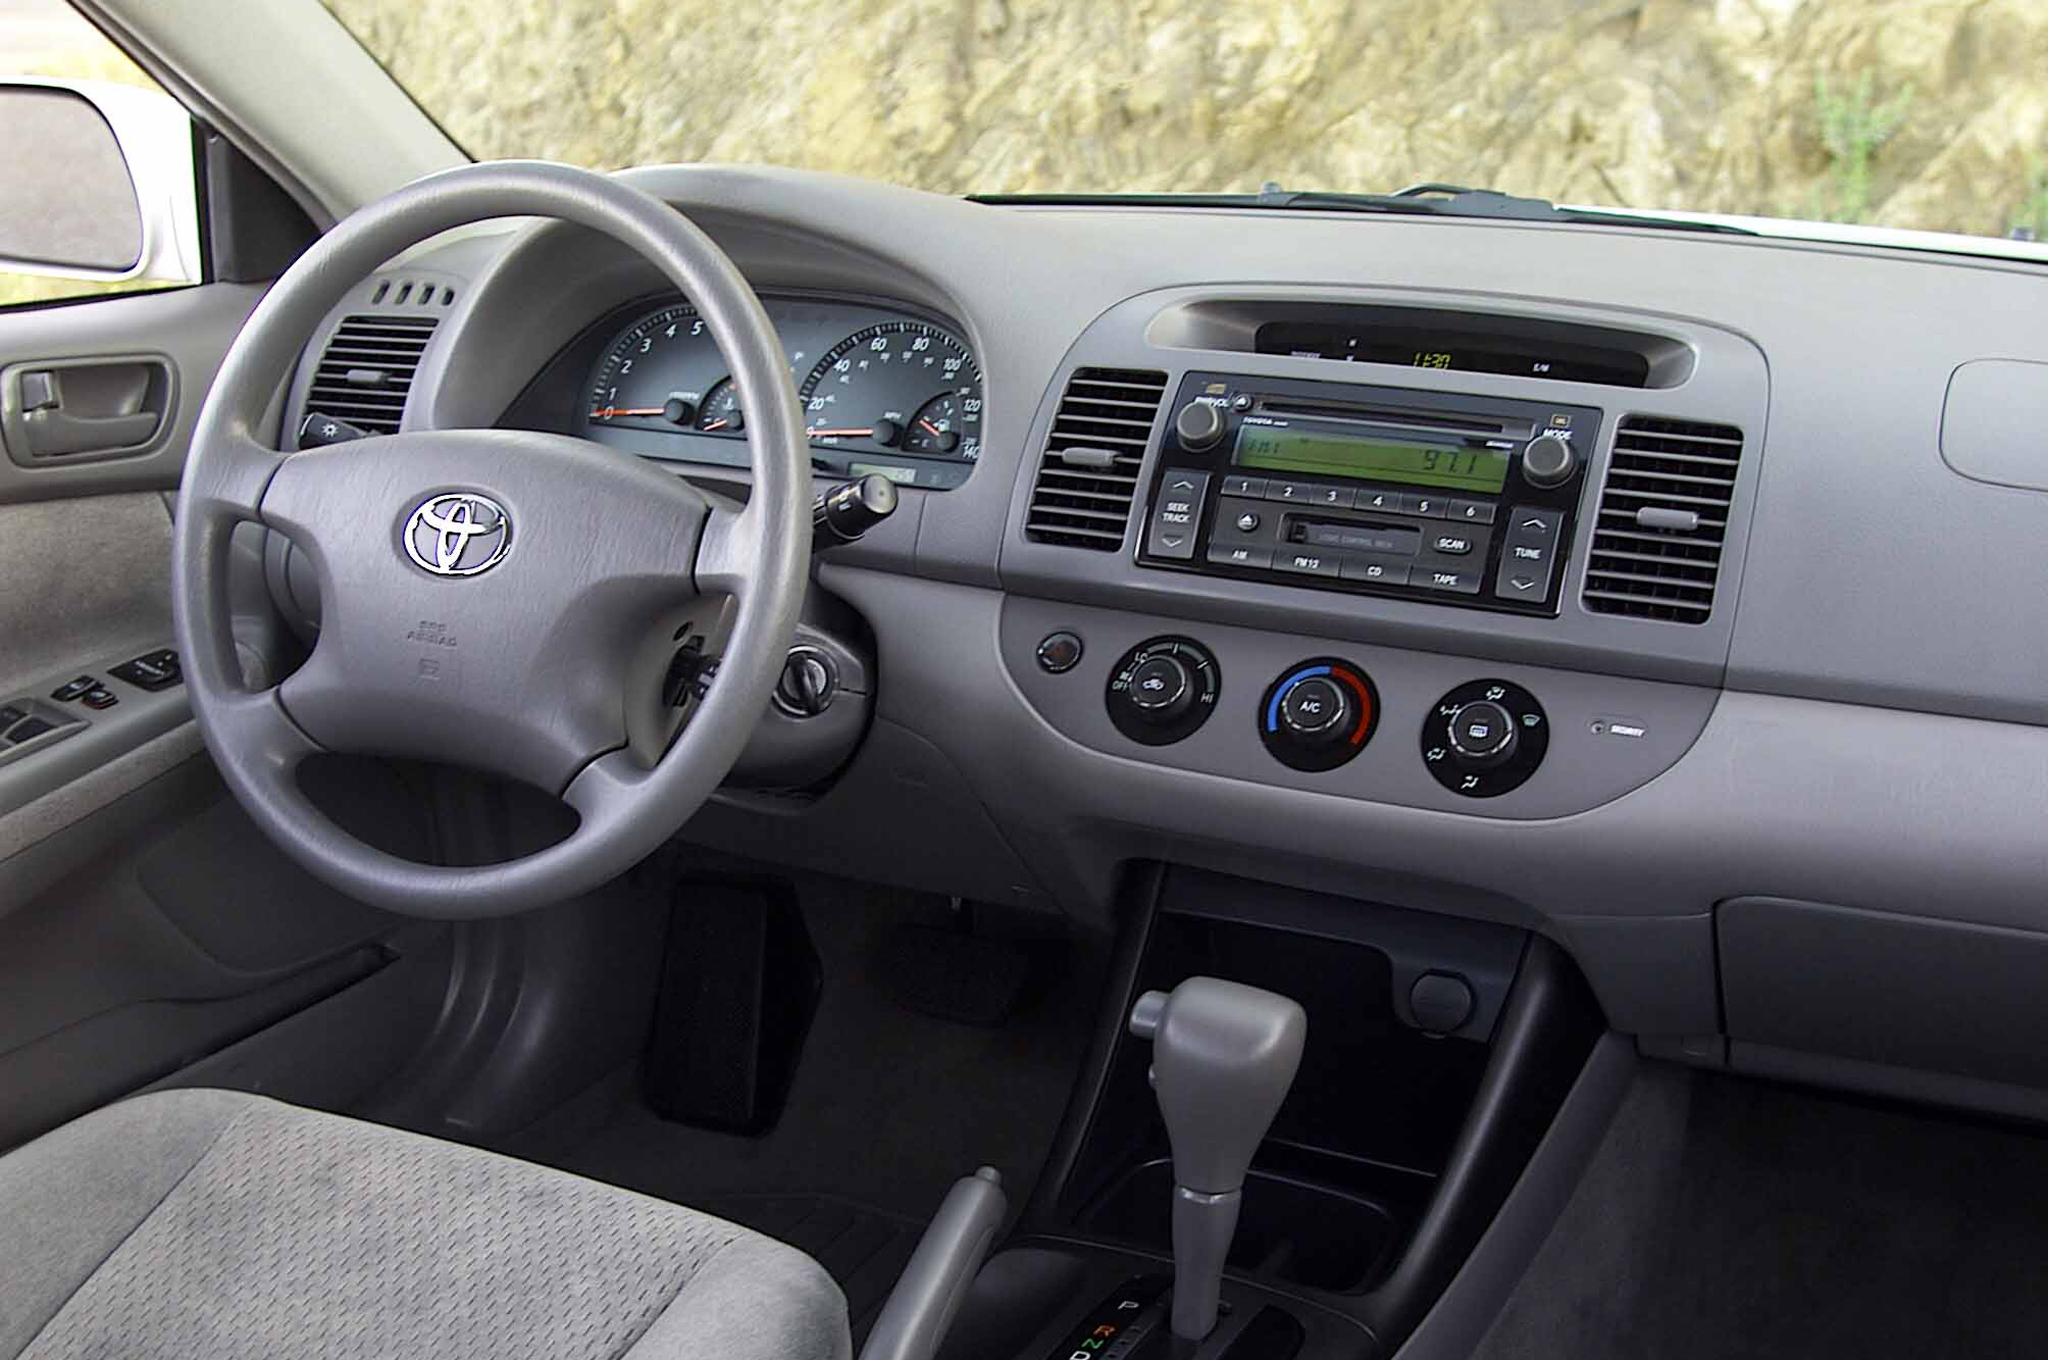 2006 Toyota Camry Image 11